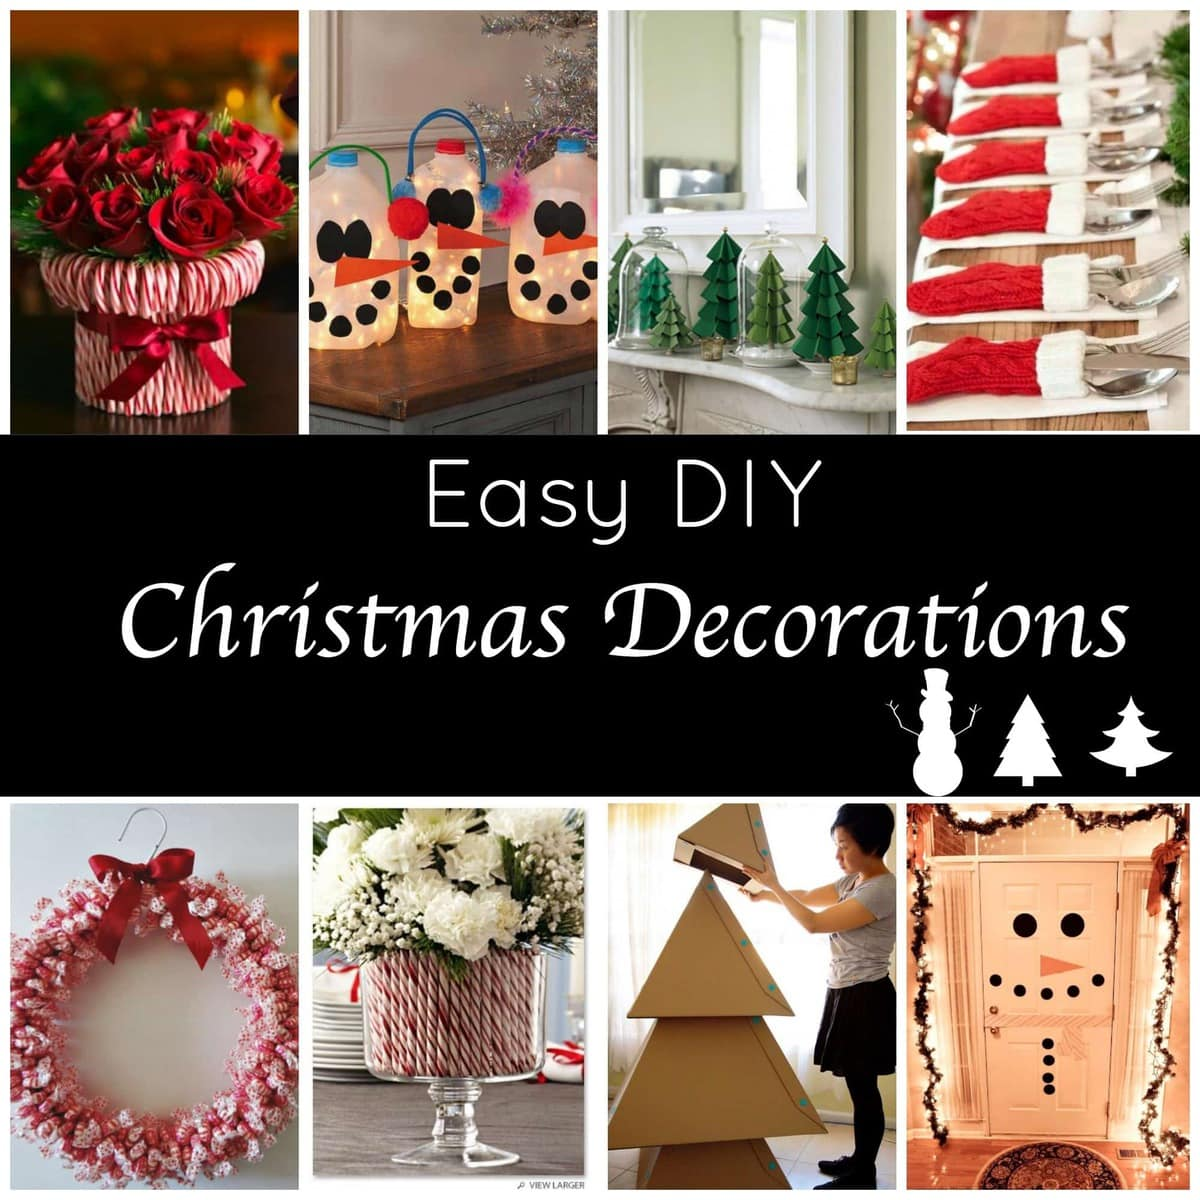 Diy Christmas Decor For School : Cute easy holiday decorations page of princess